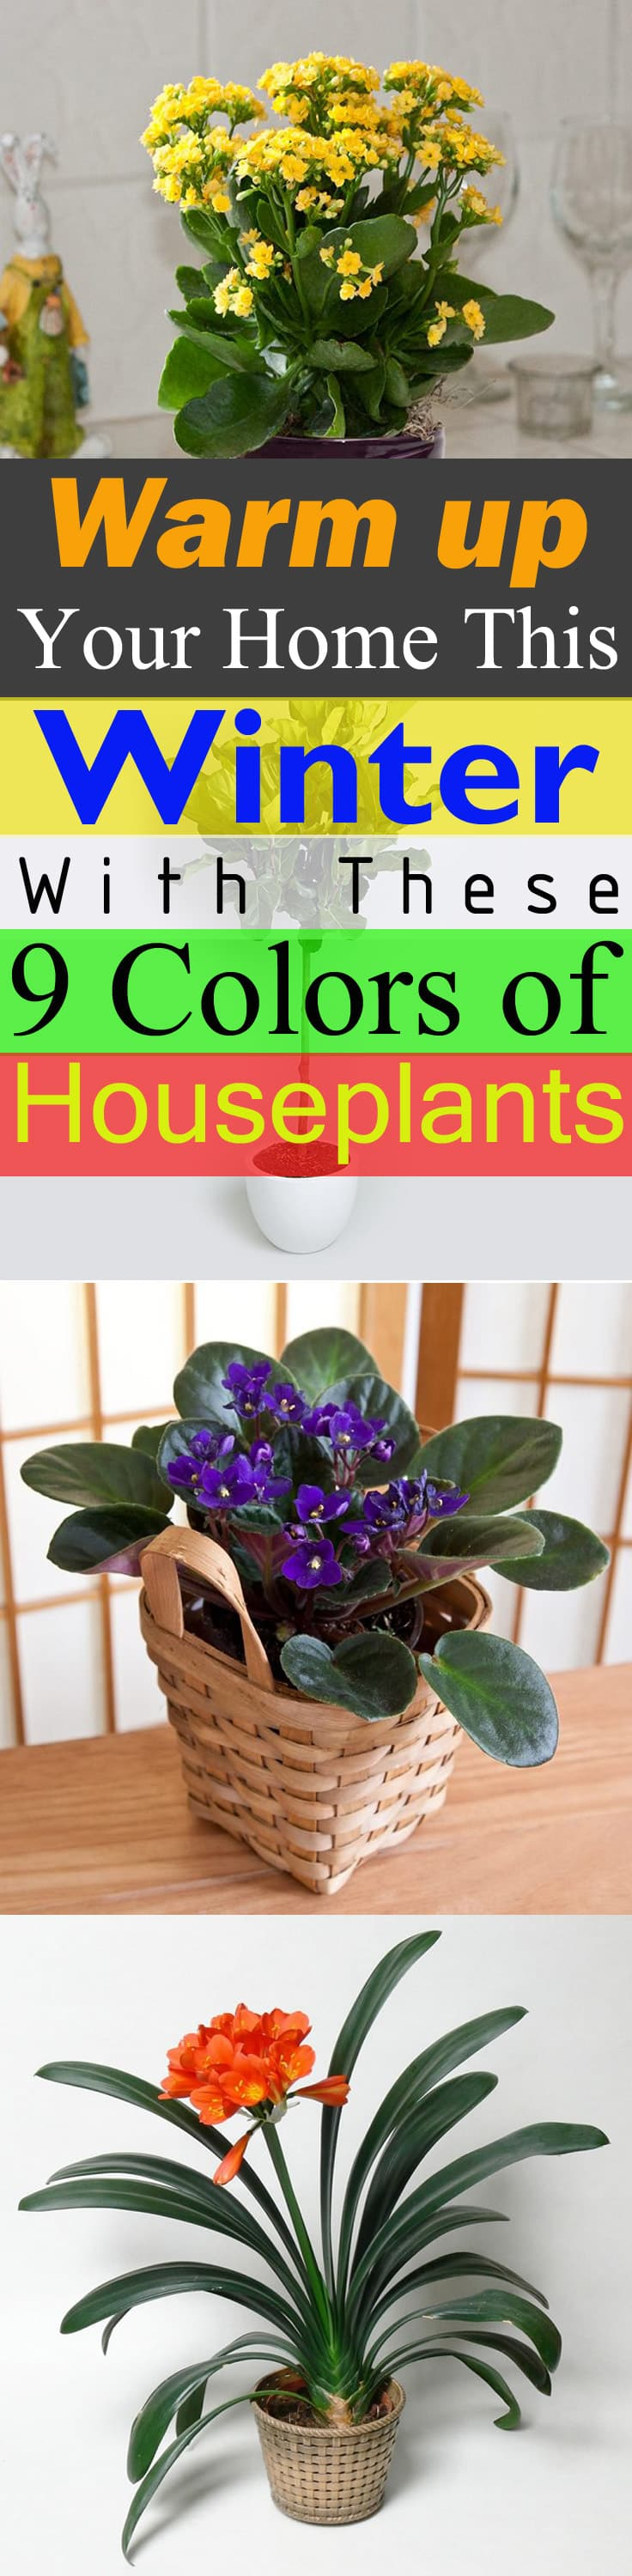 9 different colors of houseplants and how they impact your lifestyle! Learn about them and bring them in to beat the winter blues!